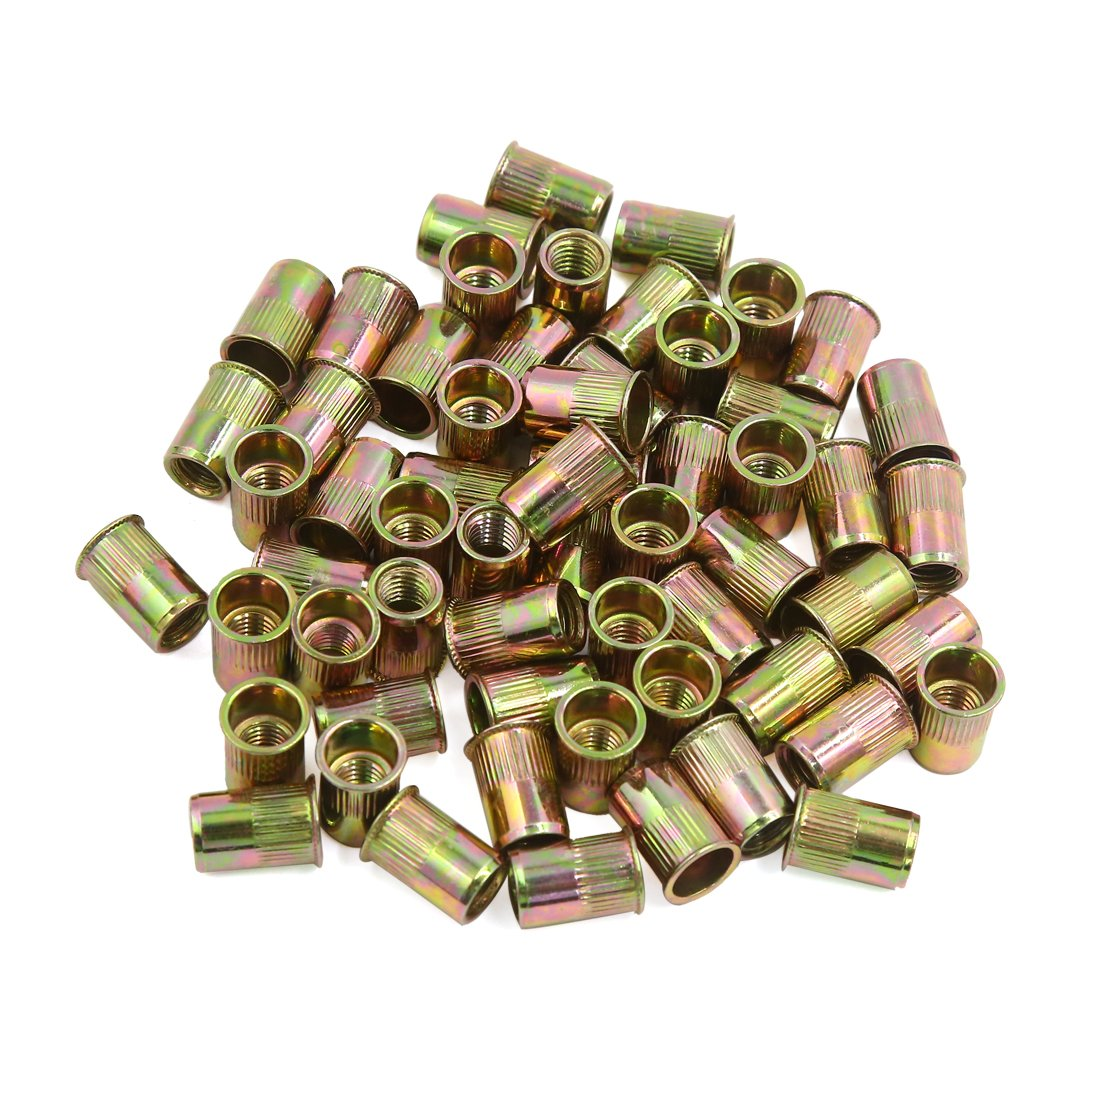 uxcell a16073000ux1892 Rivet Nut, 60 Pack Unknown